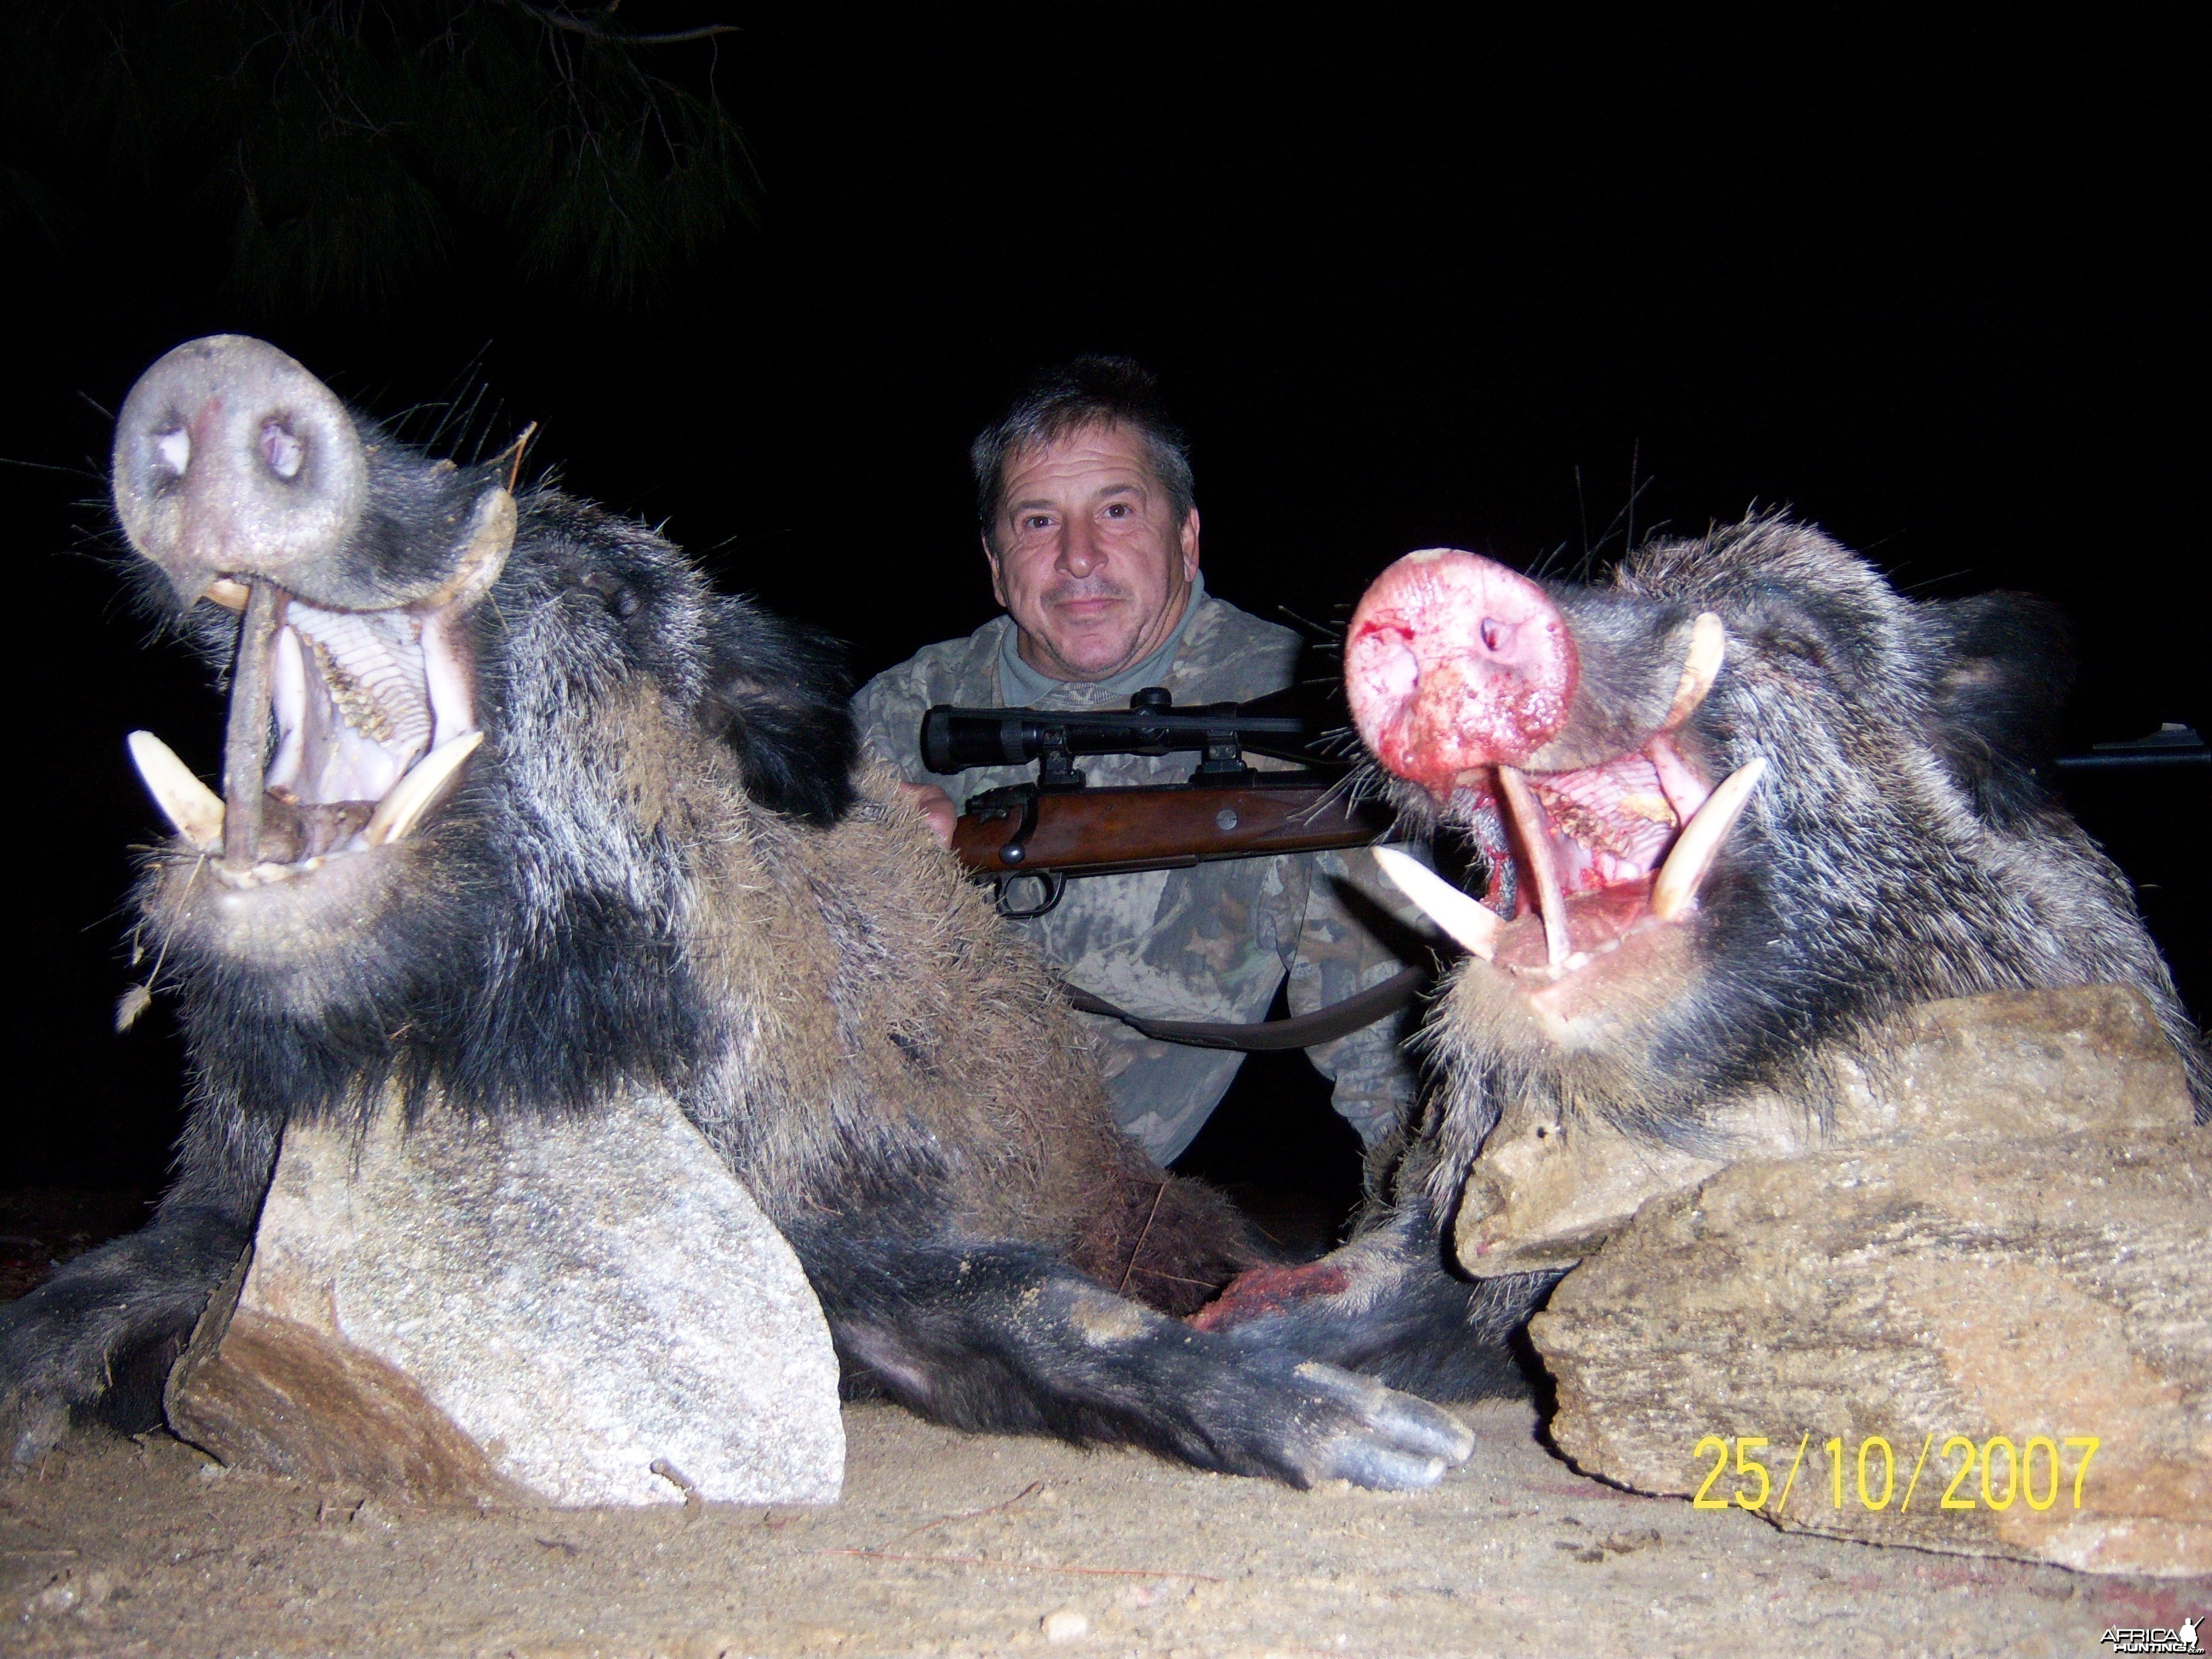 BOARS TURKEY 2007